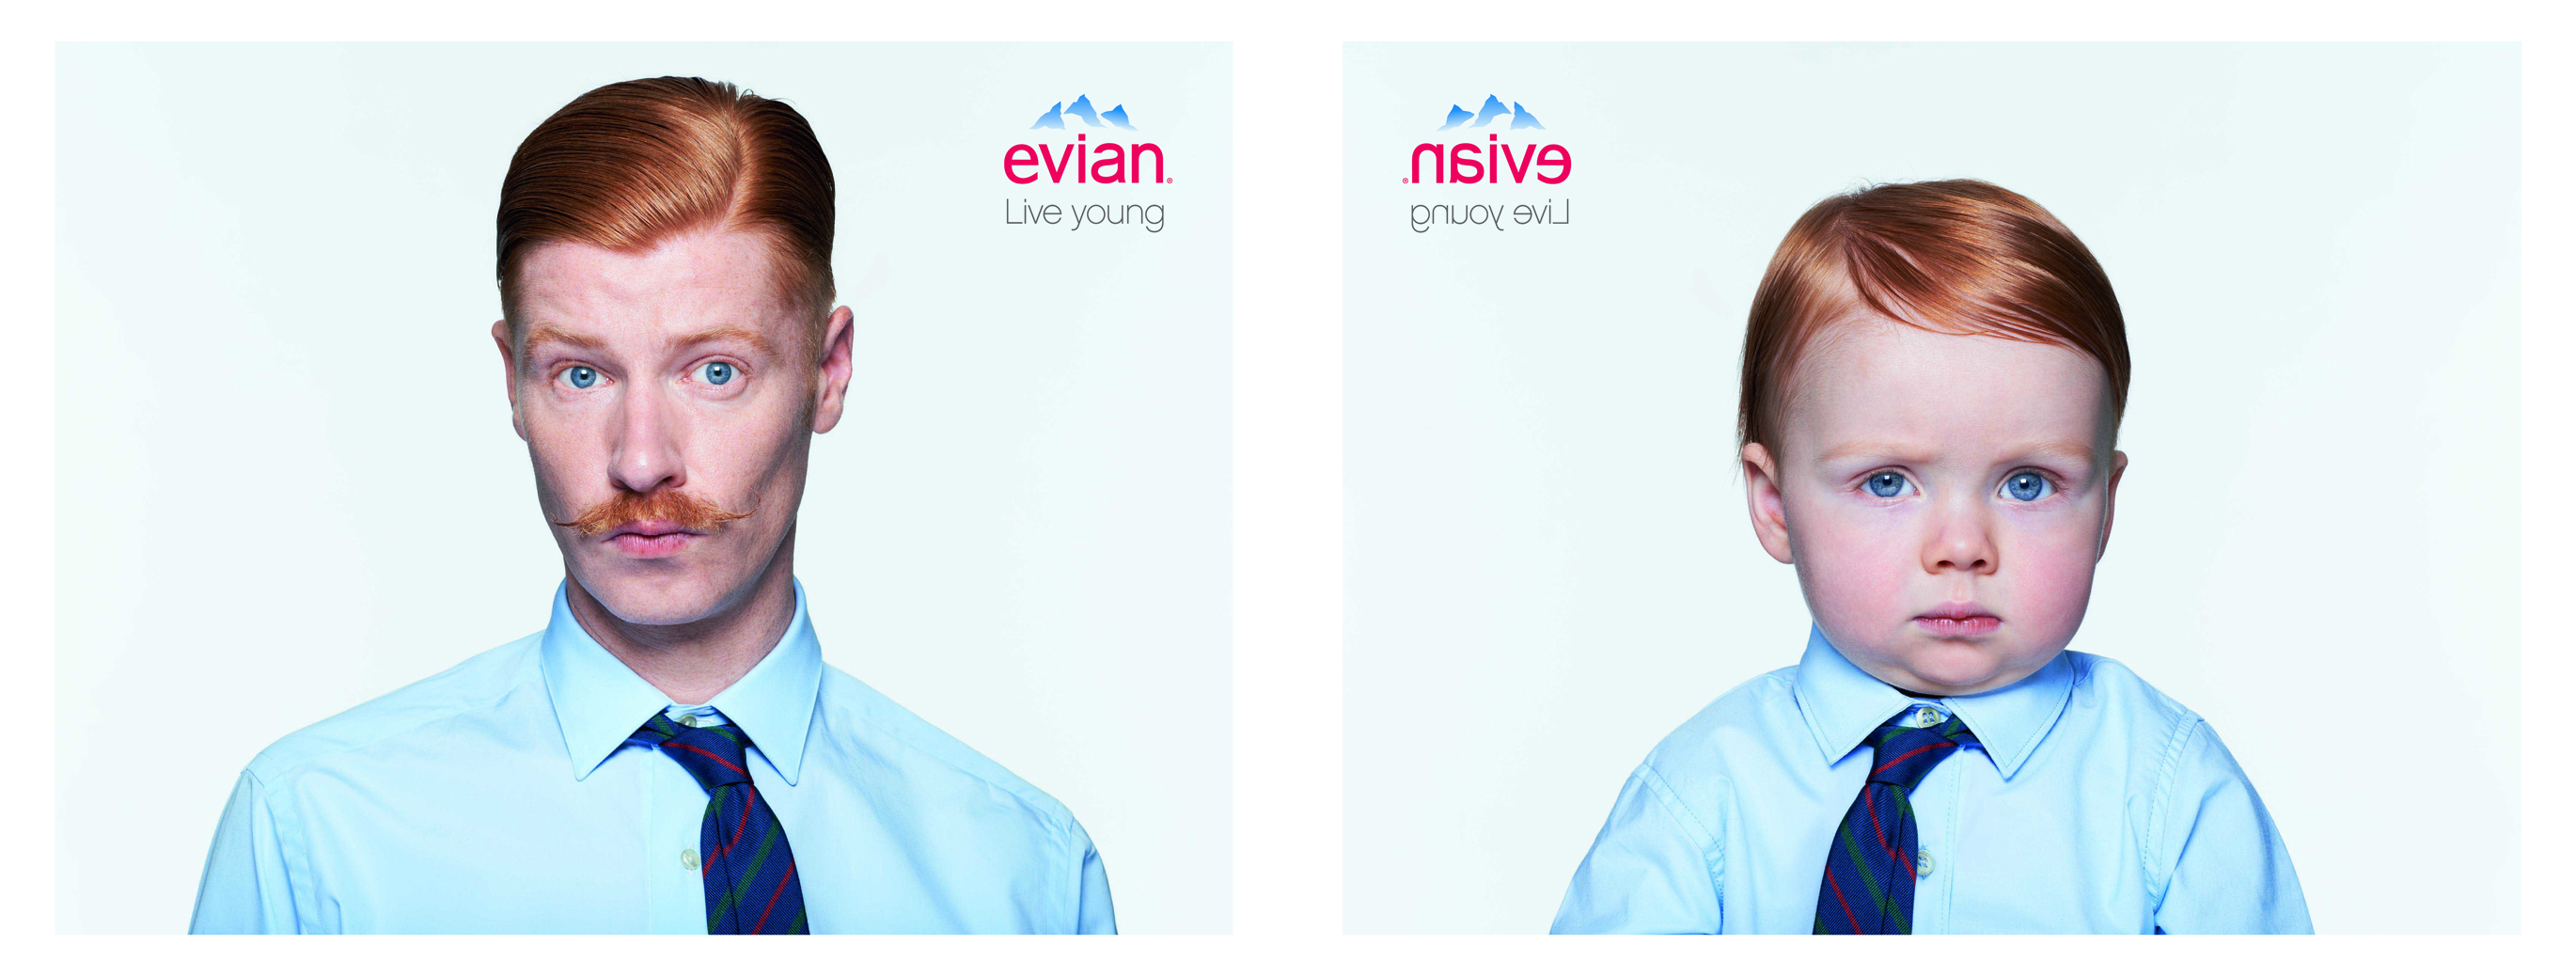 Yuksek remixe Here Comes The Hotstepper pour la campagne Evian Baby and Me